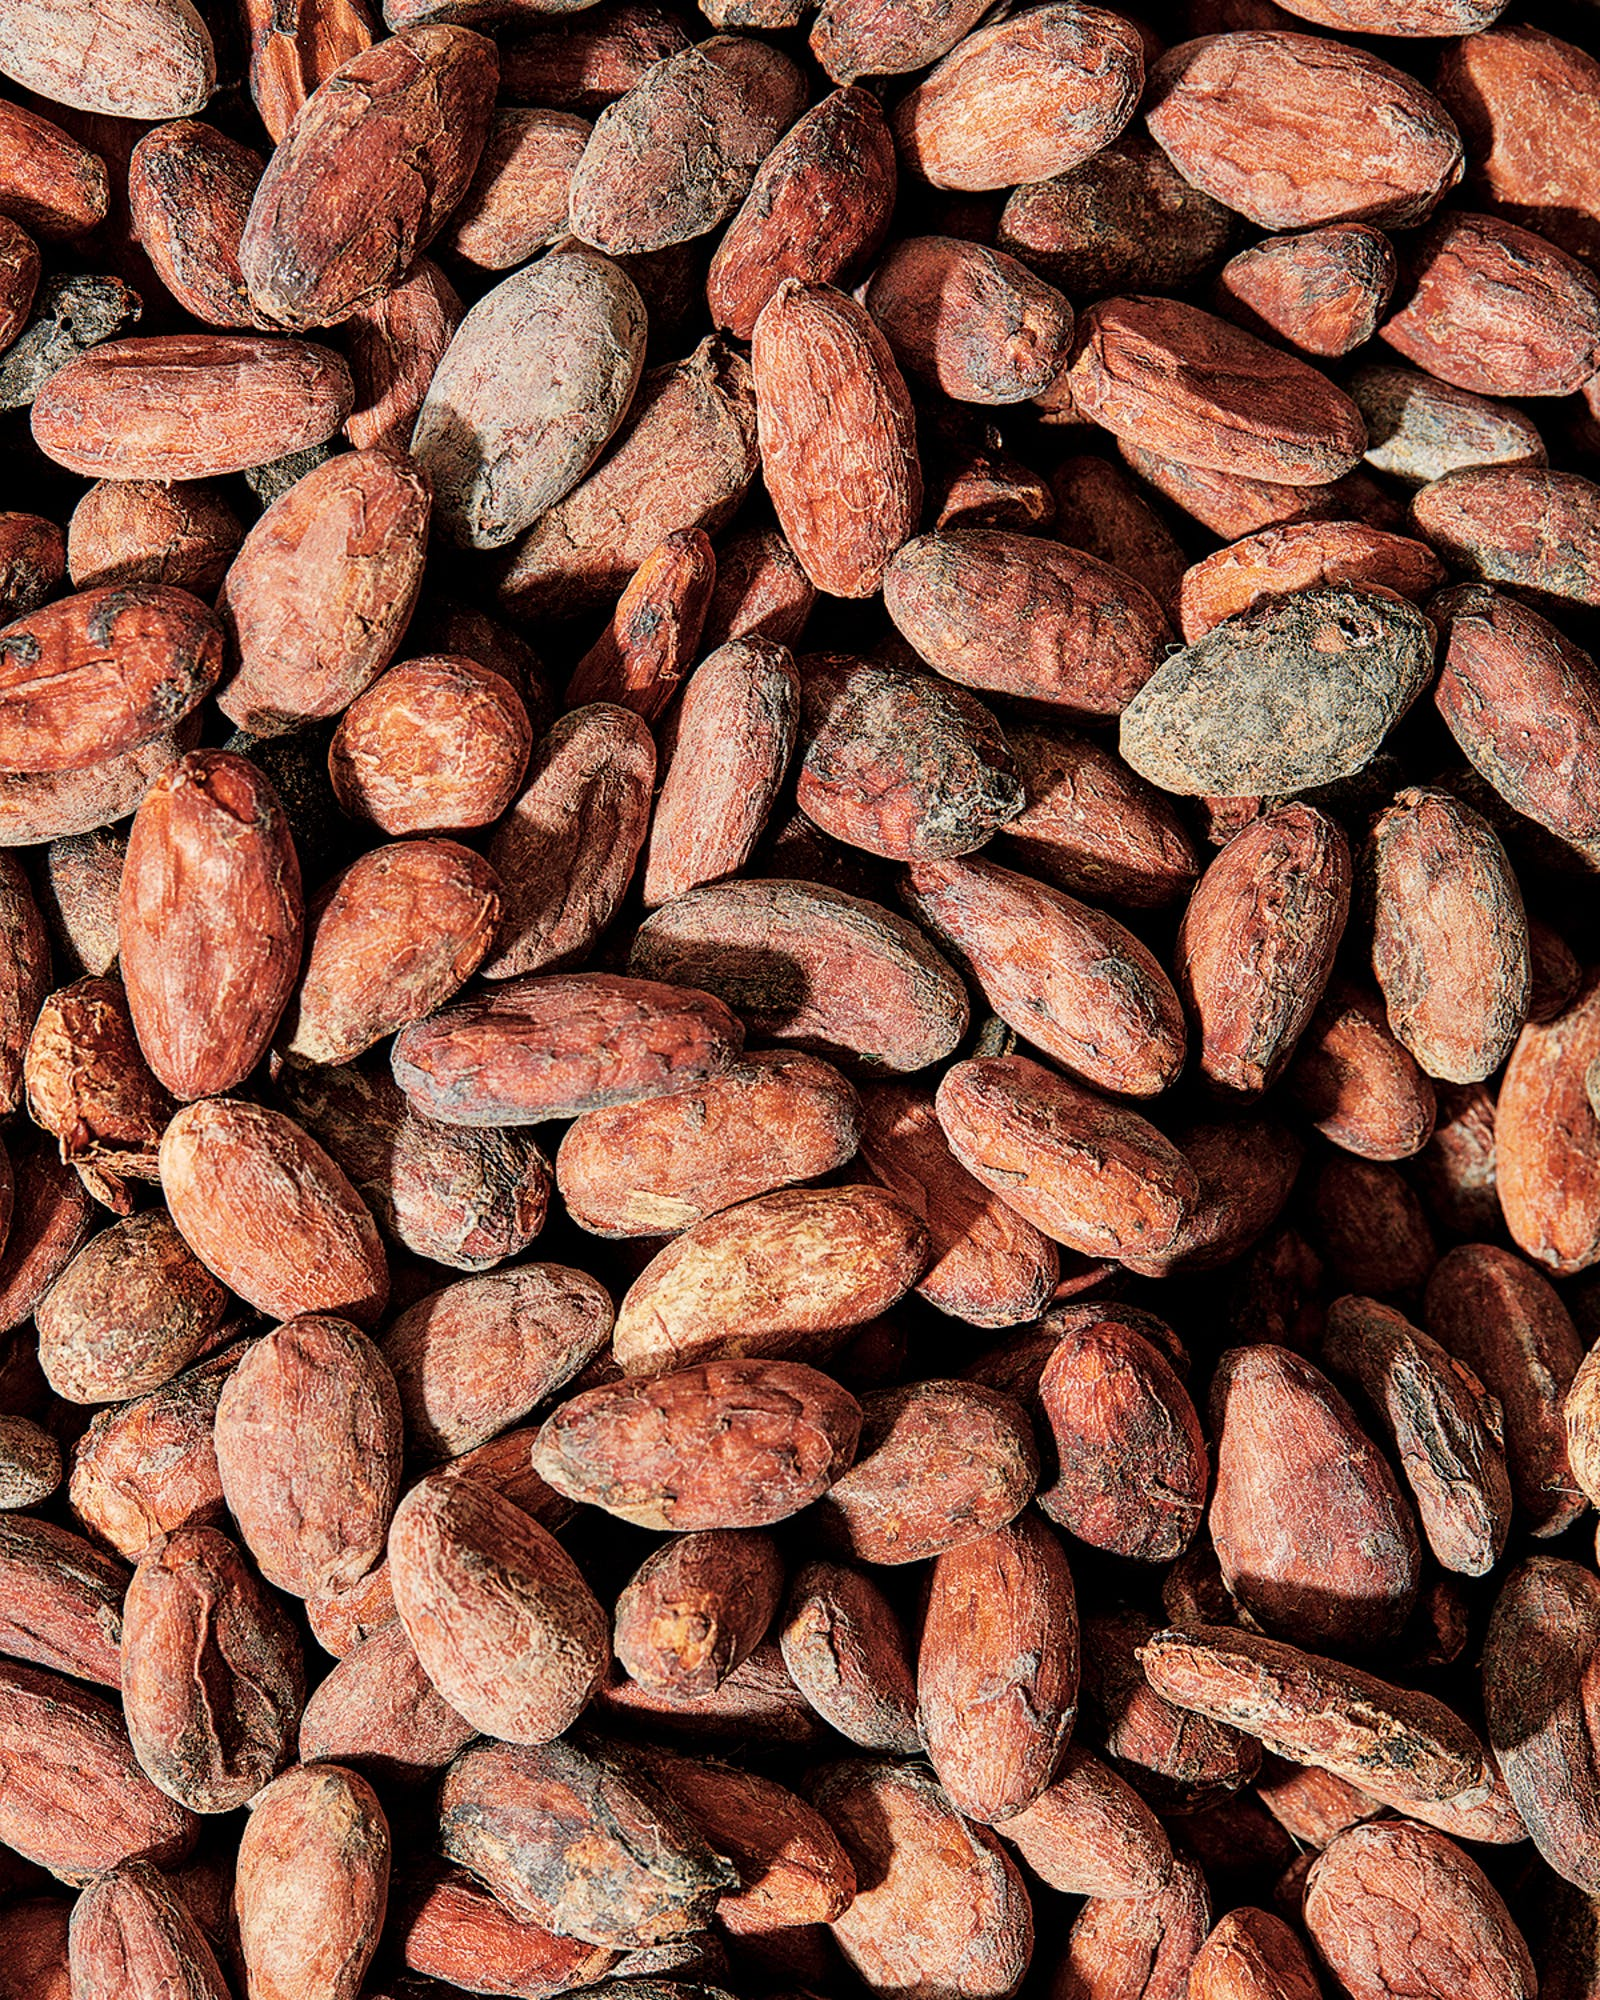 tejas-chocolates-&-barbecue-raw-cocoa-beans